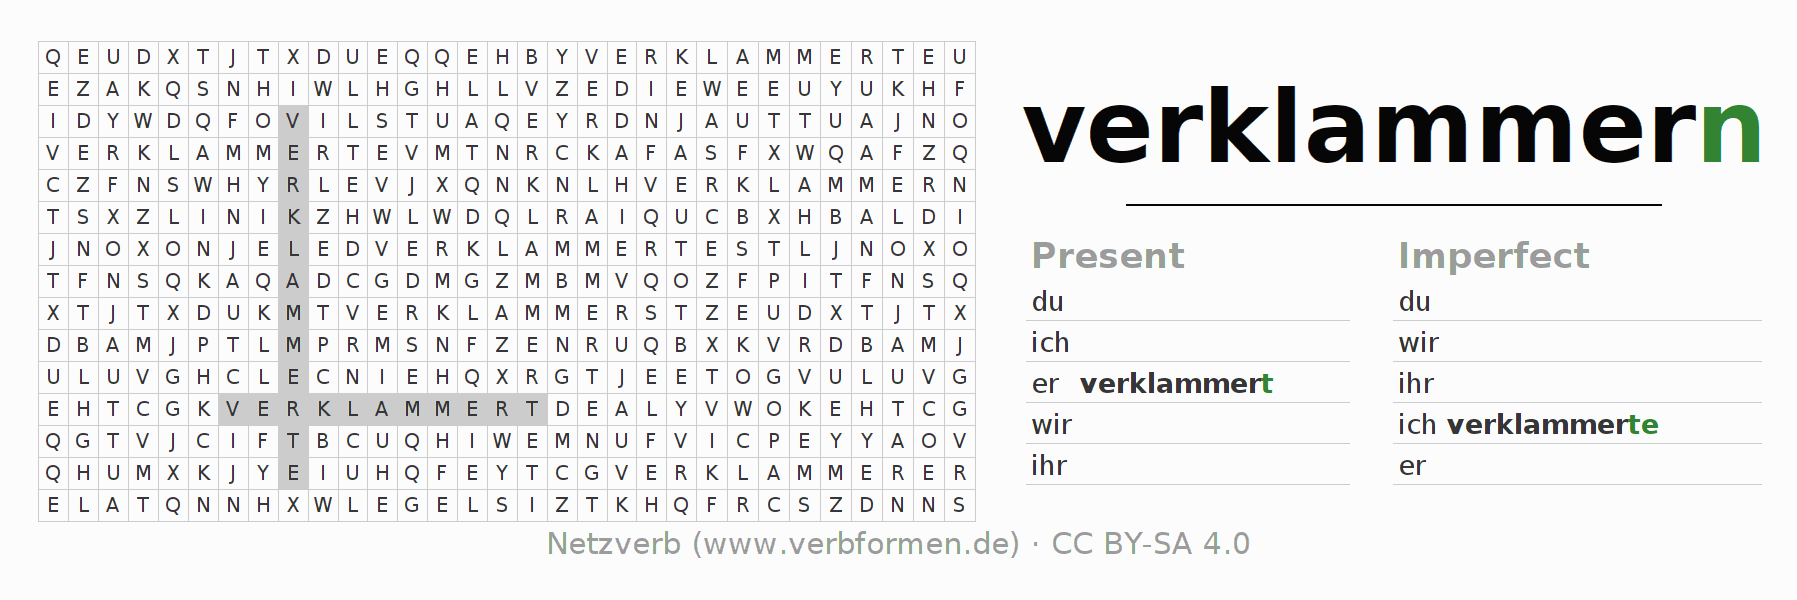 Word search puzzle for the conjugation of the verb verklammern